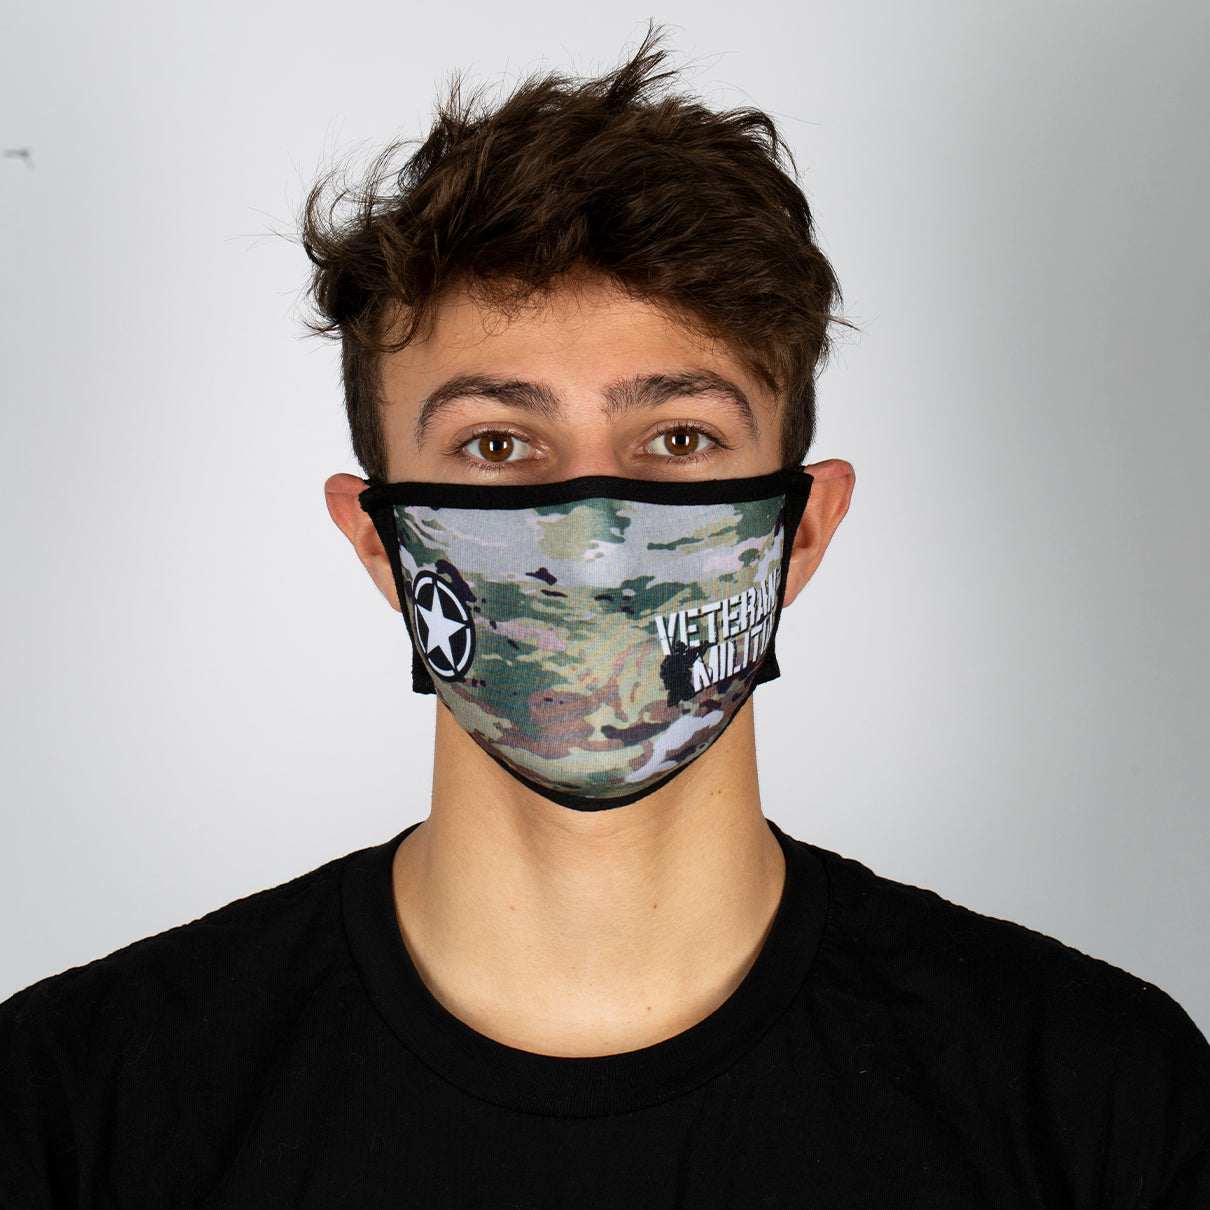 US Army - Veteran Militia - Anti-dust Face Mask